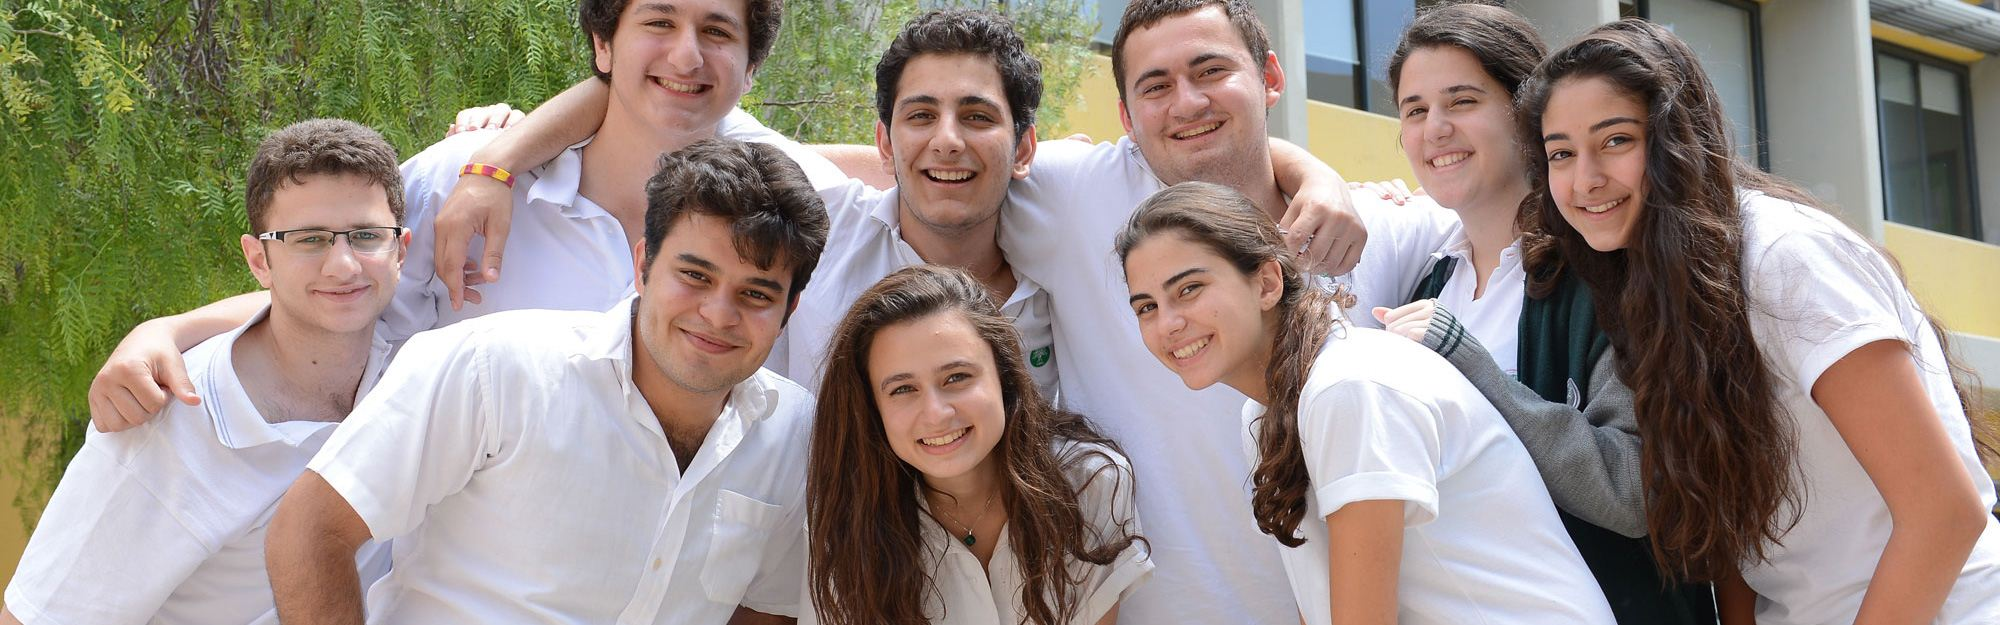 The SABIS Student Life Organization®